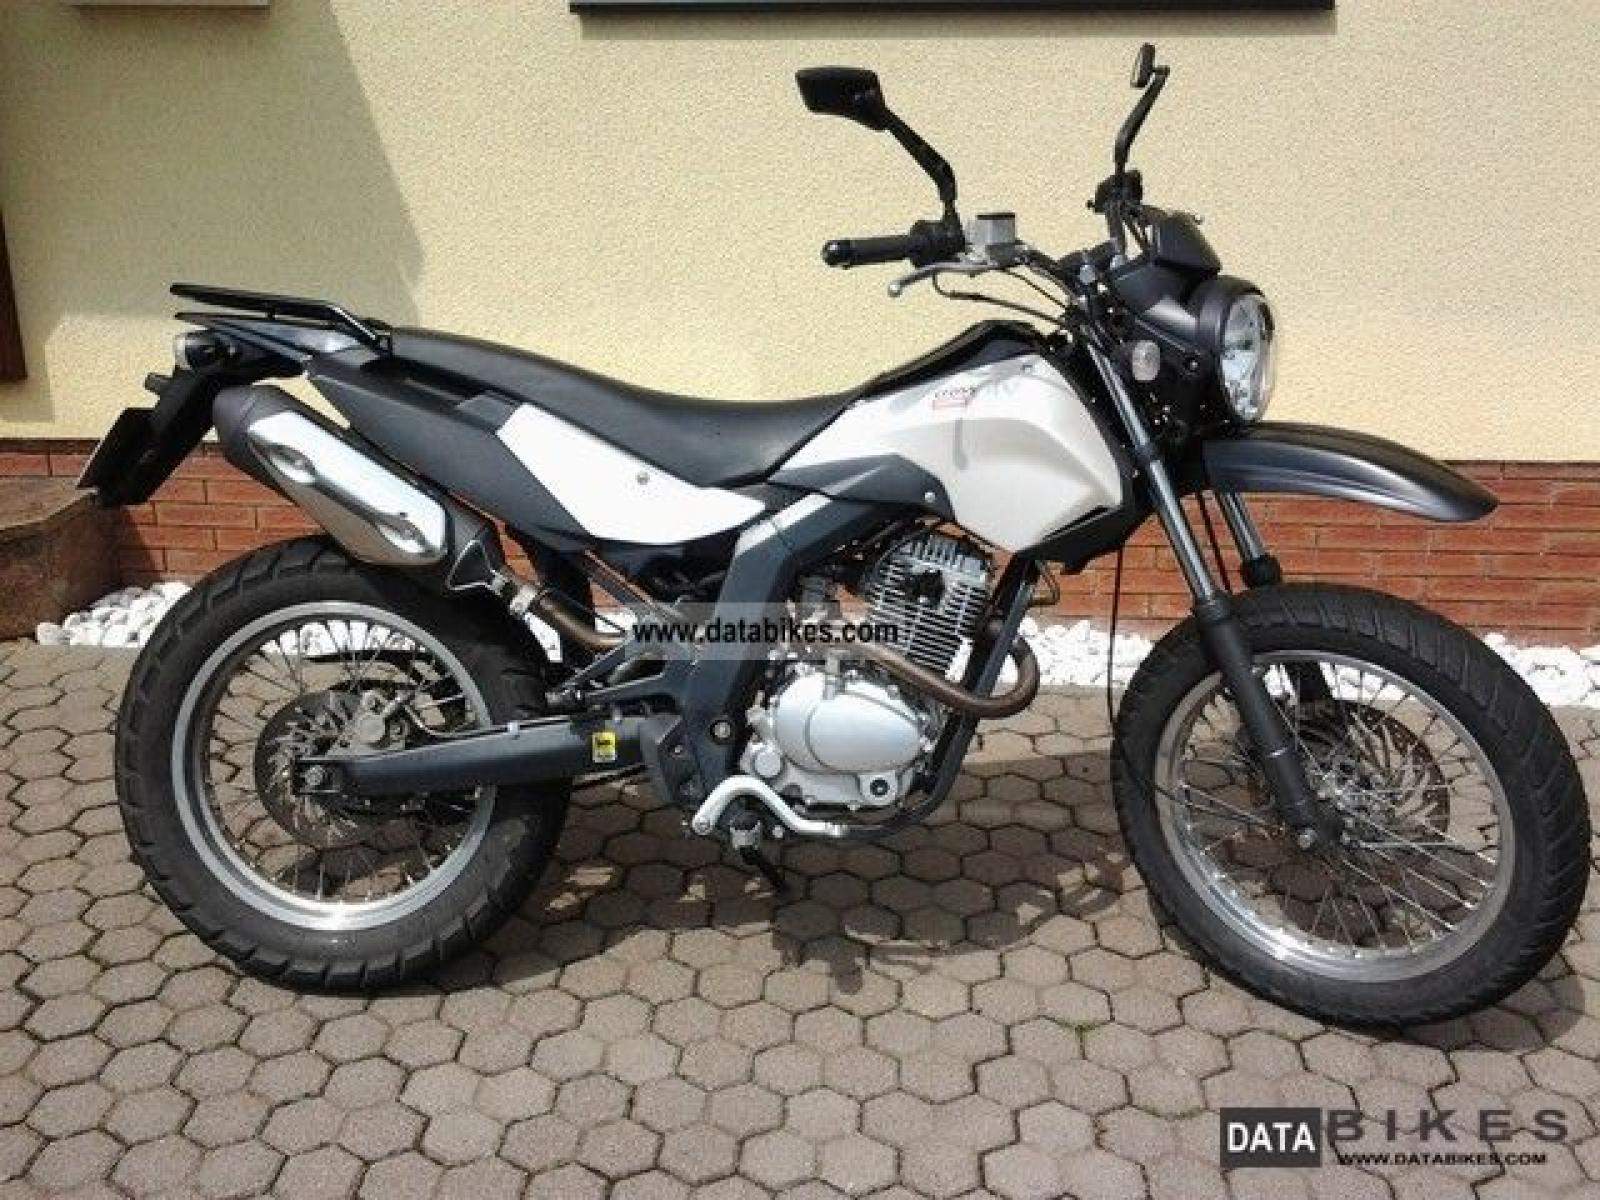 2011 Derbi Cross City 125 #3